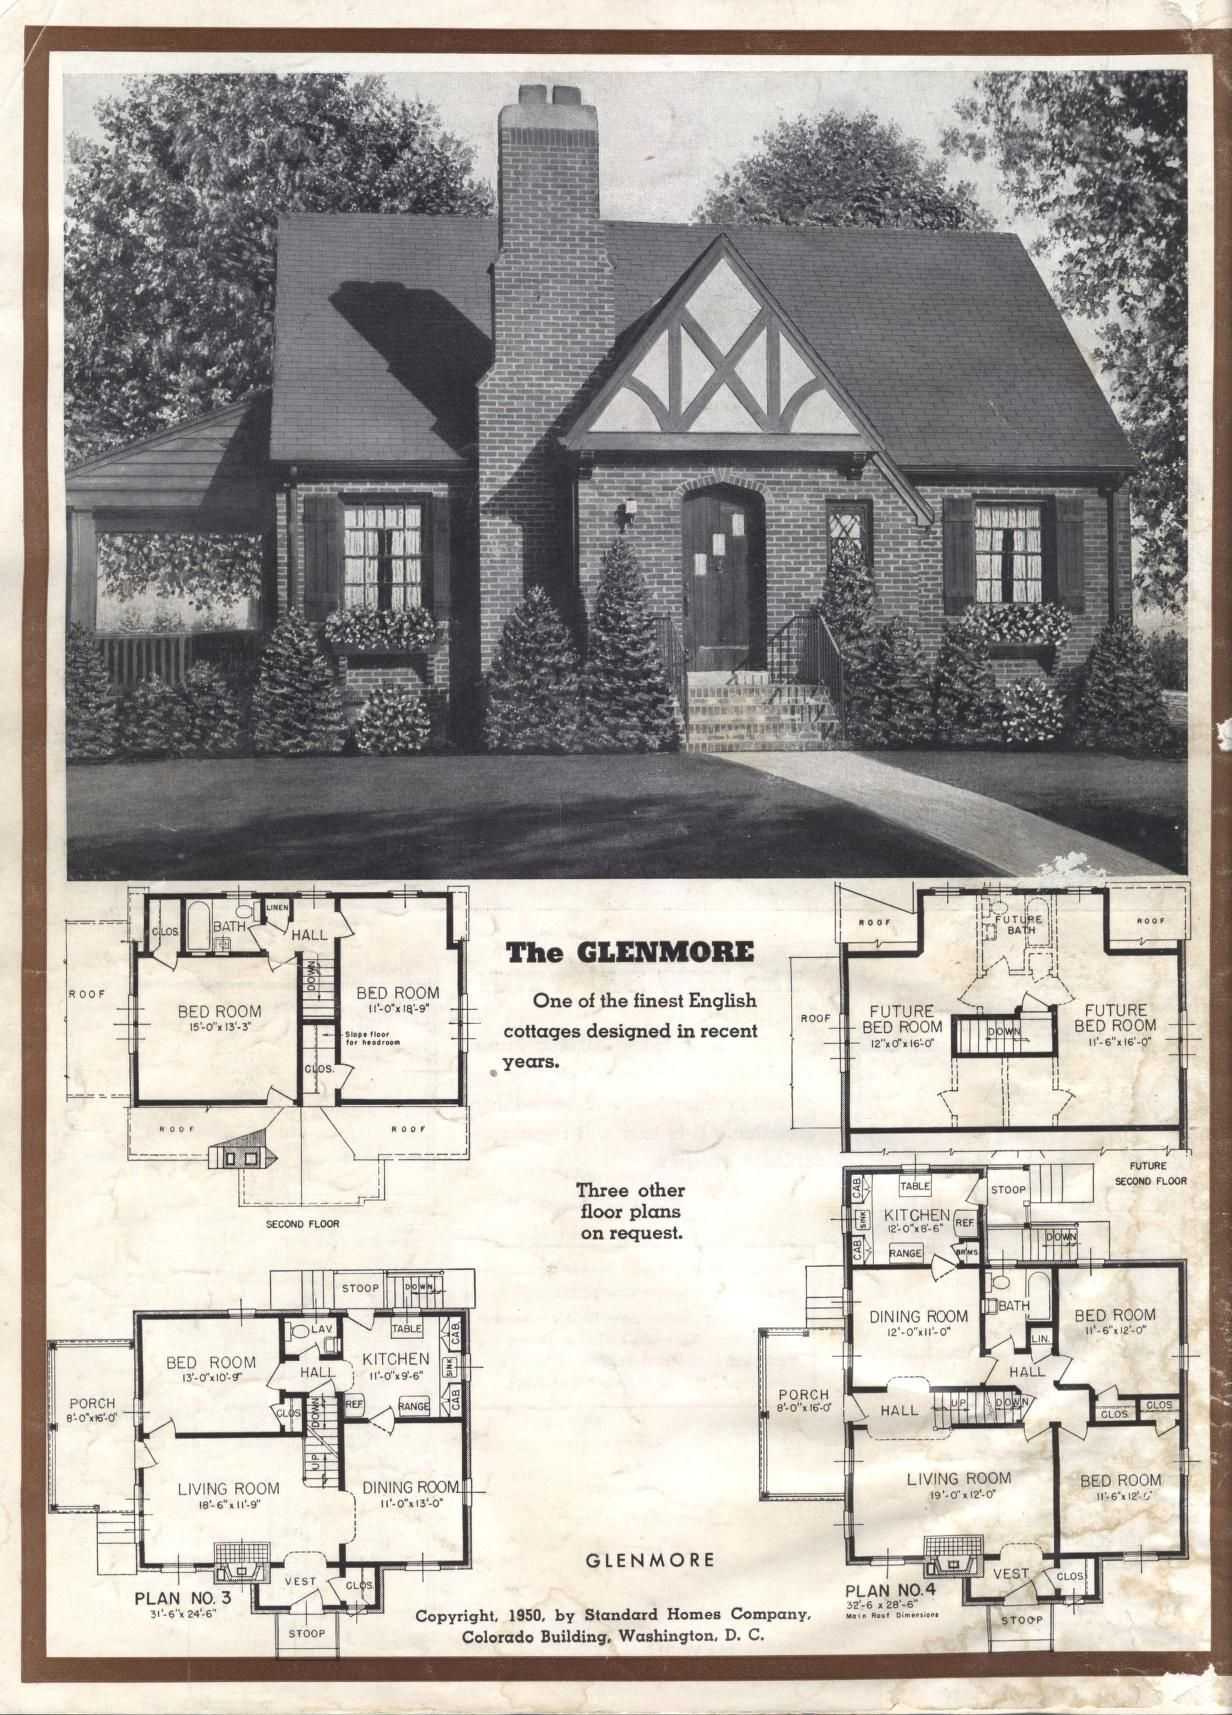 Better Homes At Lower Cost A 50 By Standard Homes Co Publication Date 1950 The Glenmore House Plans With Pictures Vintage House Plans Small House Floor Plans